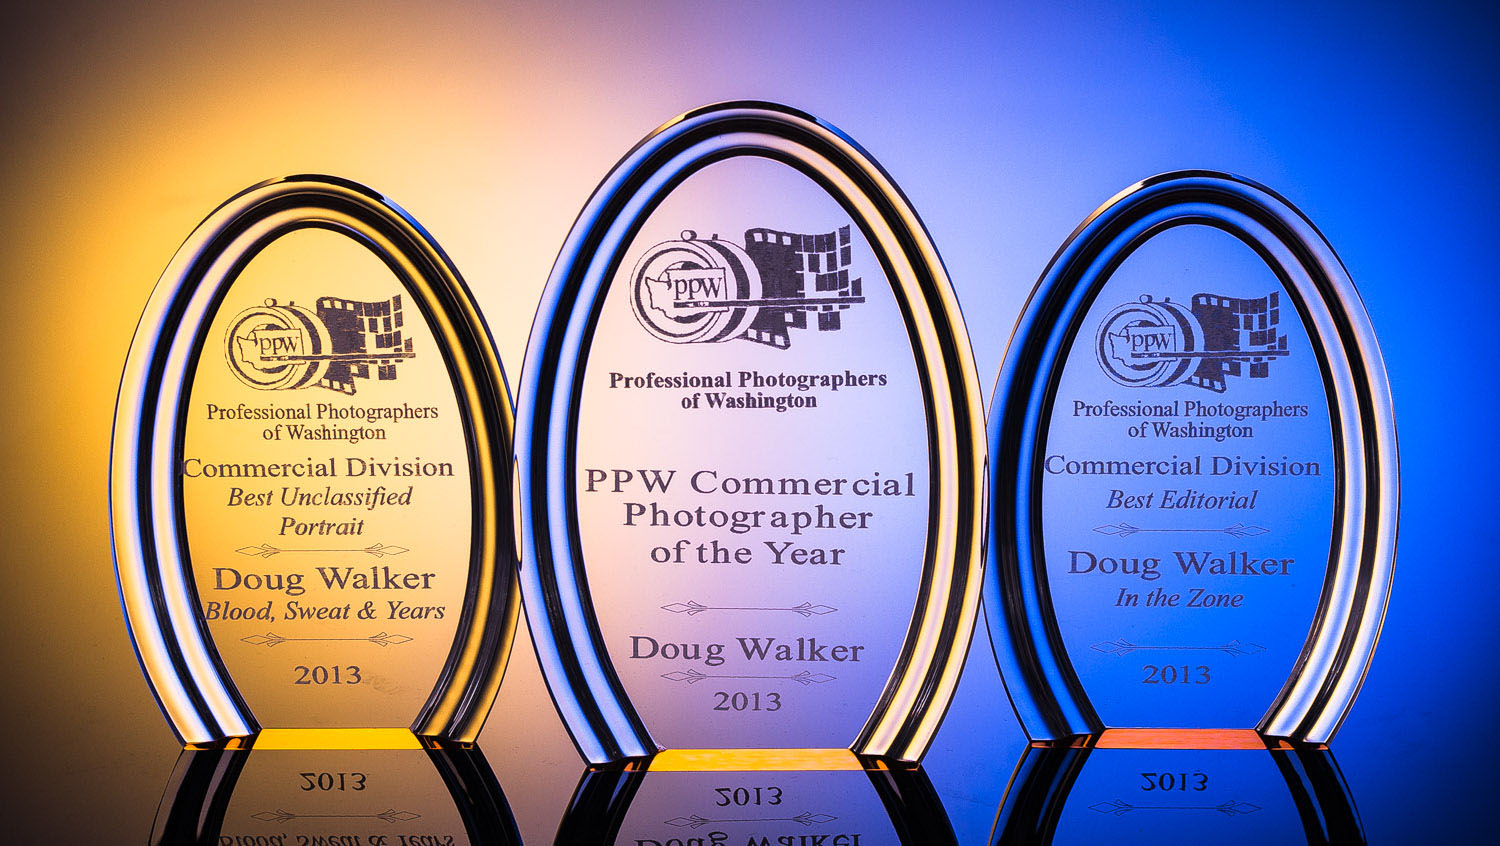 2013 Professional Photographers of Washington